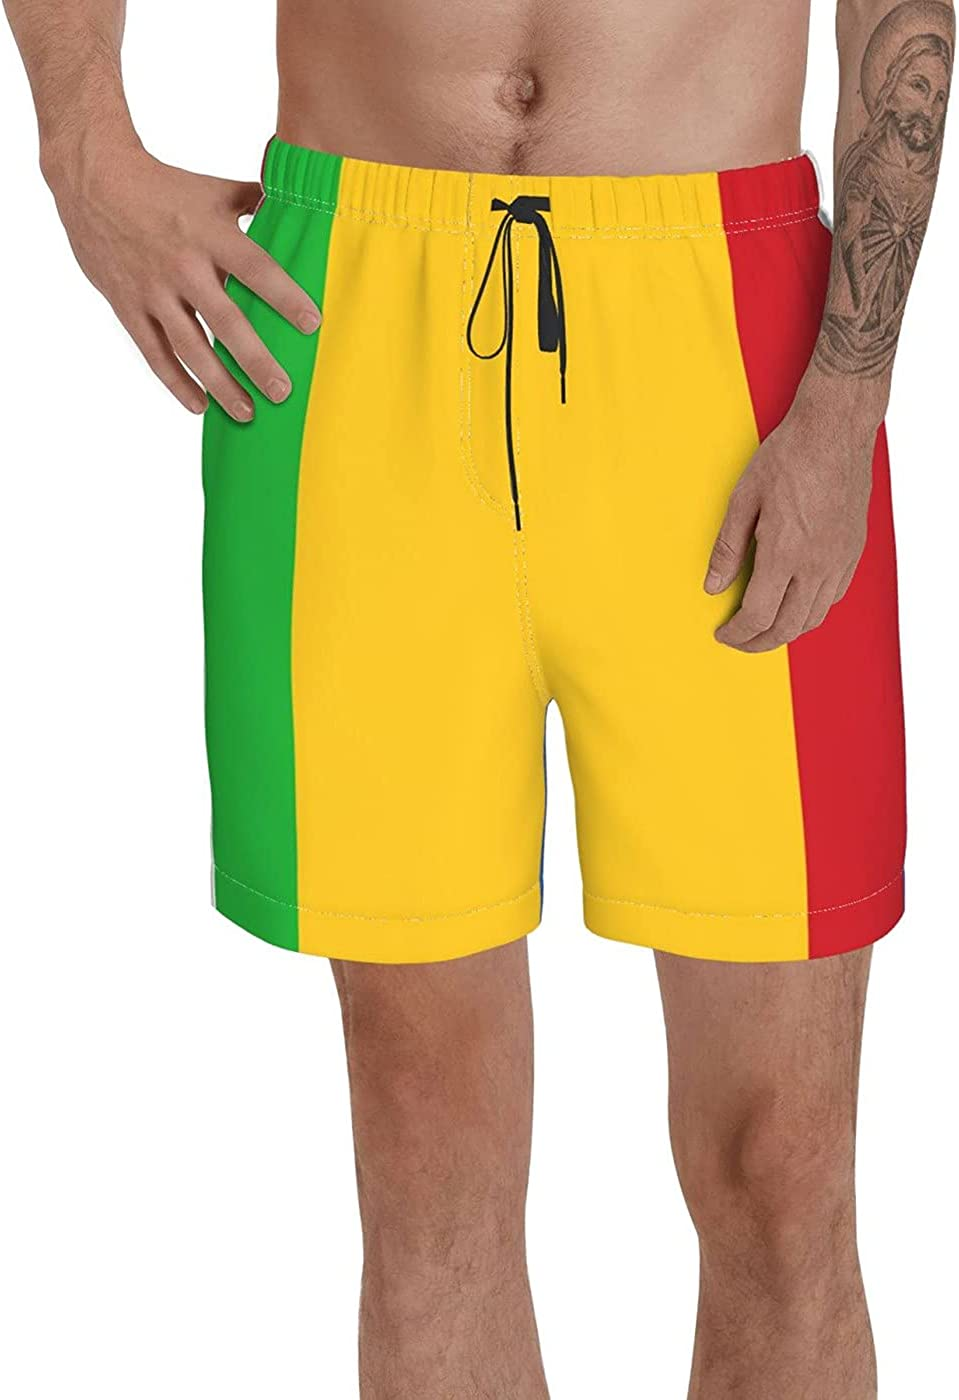 Count Mali Flag Men's 3D Printed Funny Summer Quick Dry Swim Short Board Shorts with